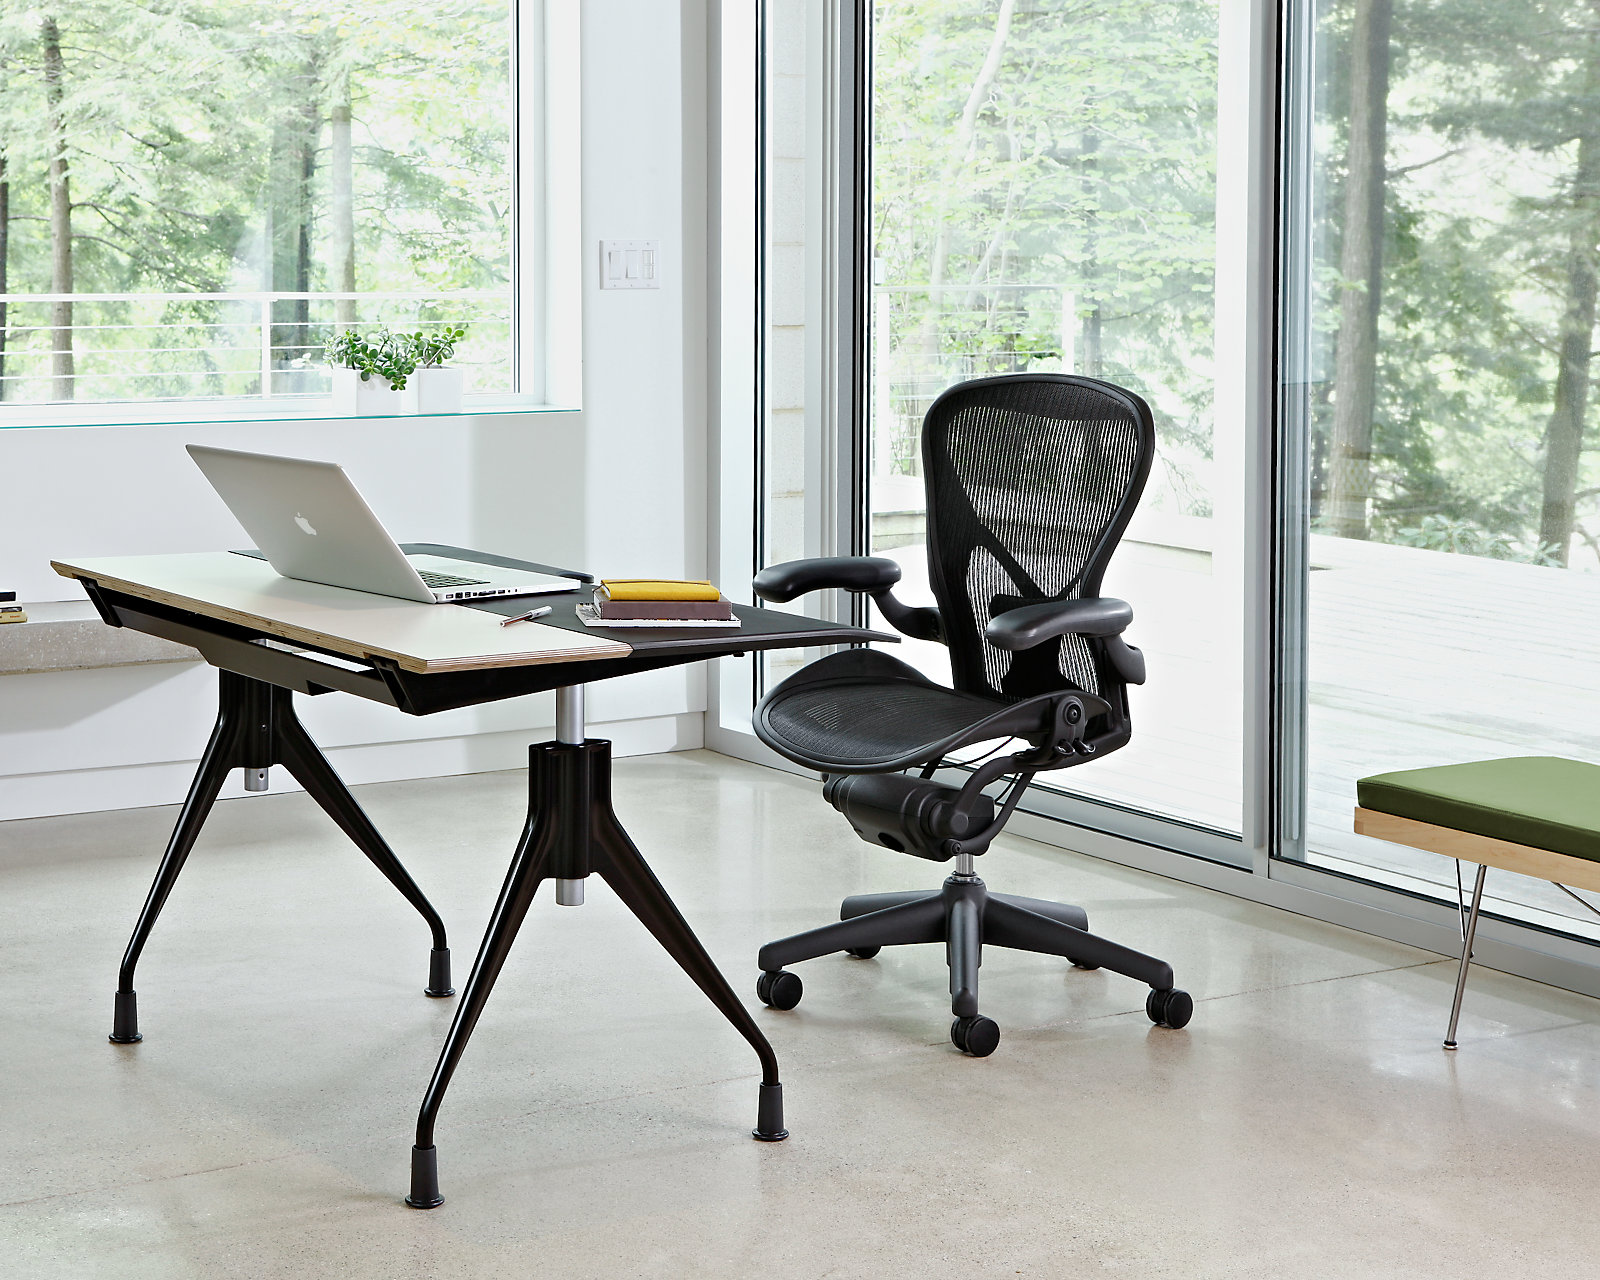 Good office chairs ergonomic - Aeron Chair Scene